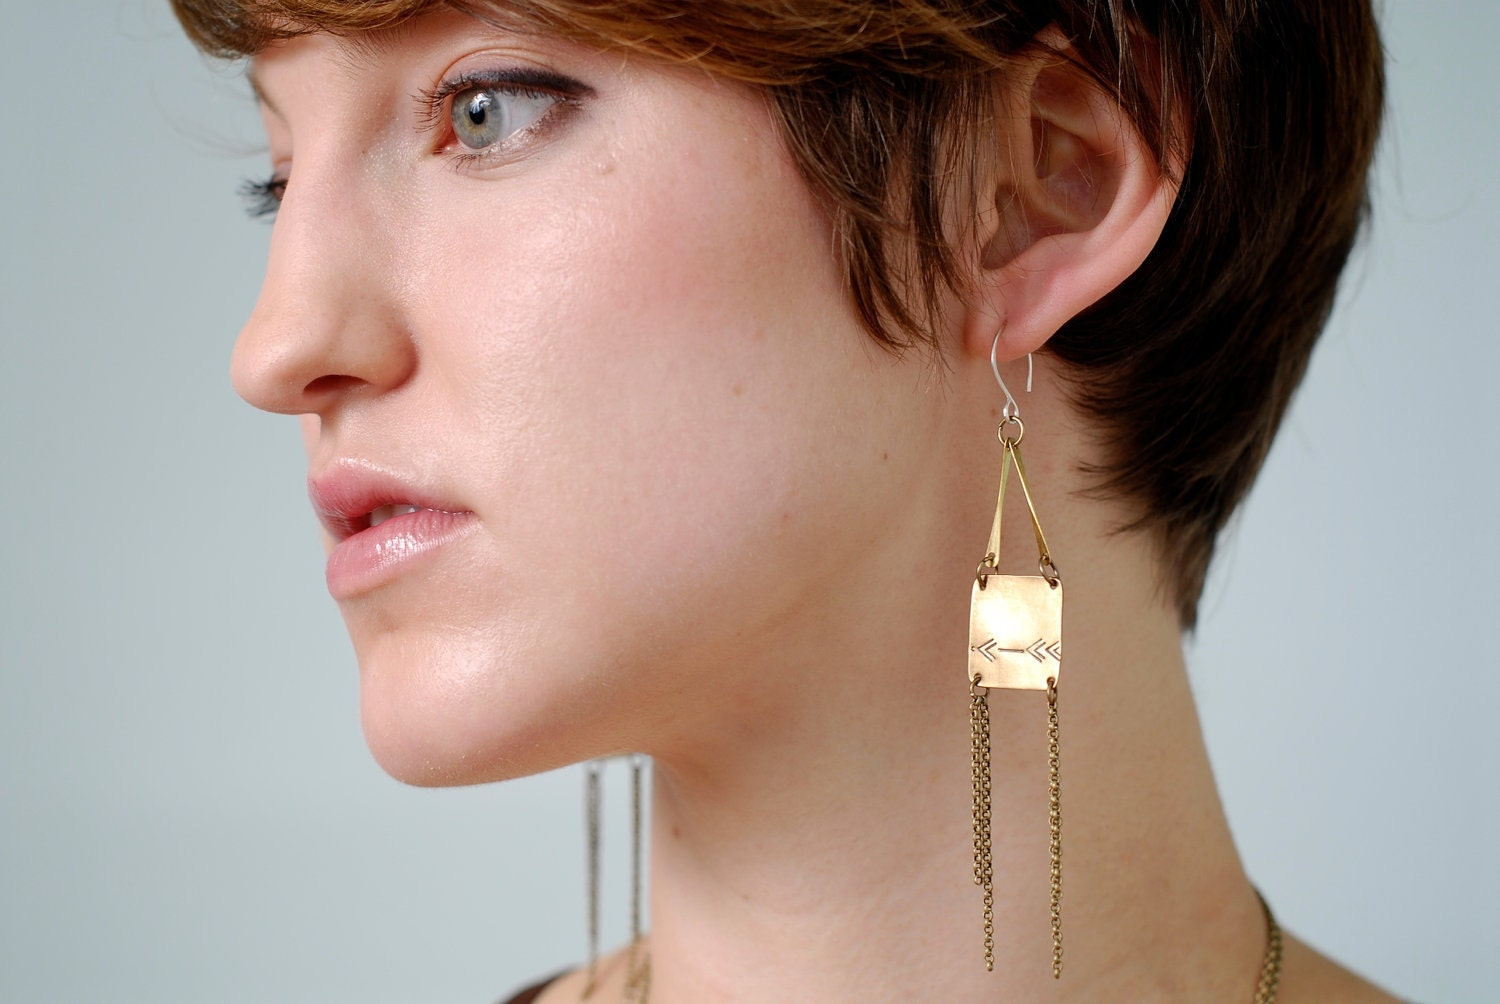 Sights are Set Brass Square and Arrow Earrings